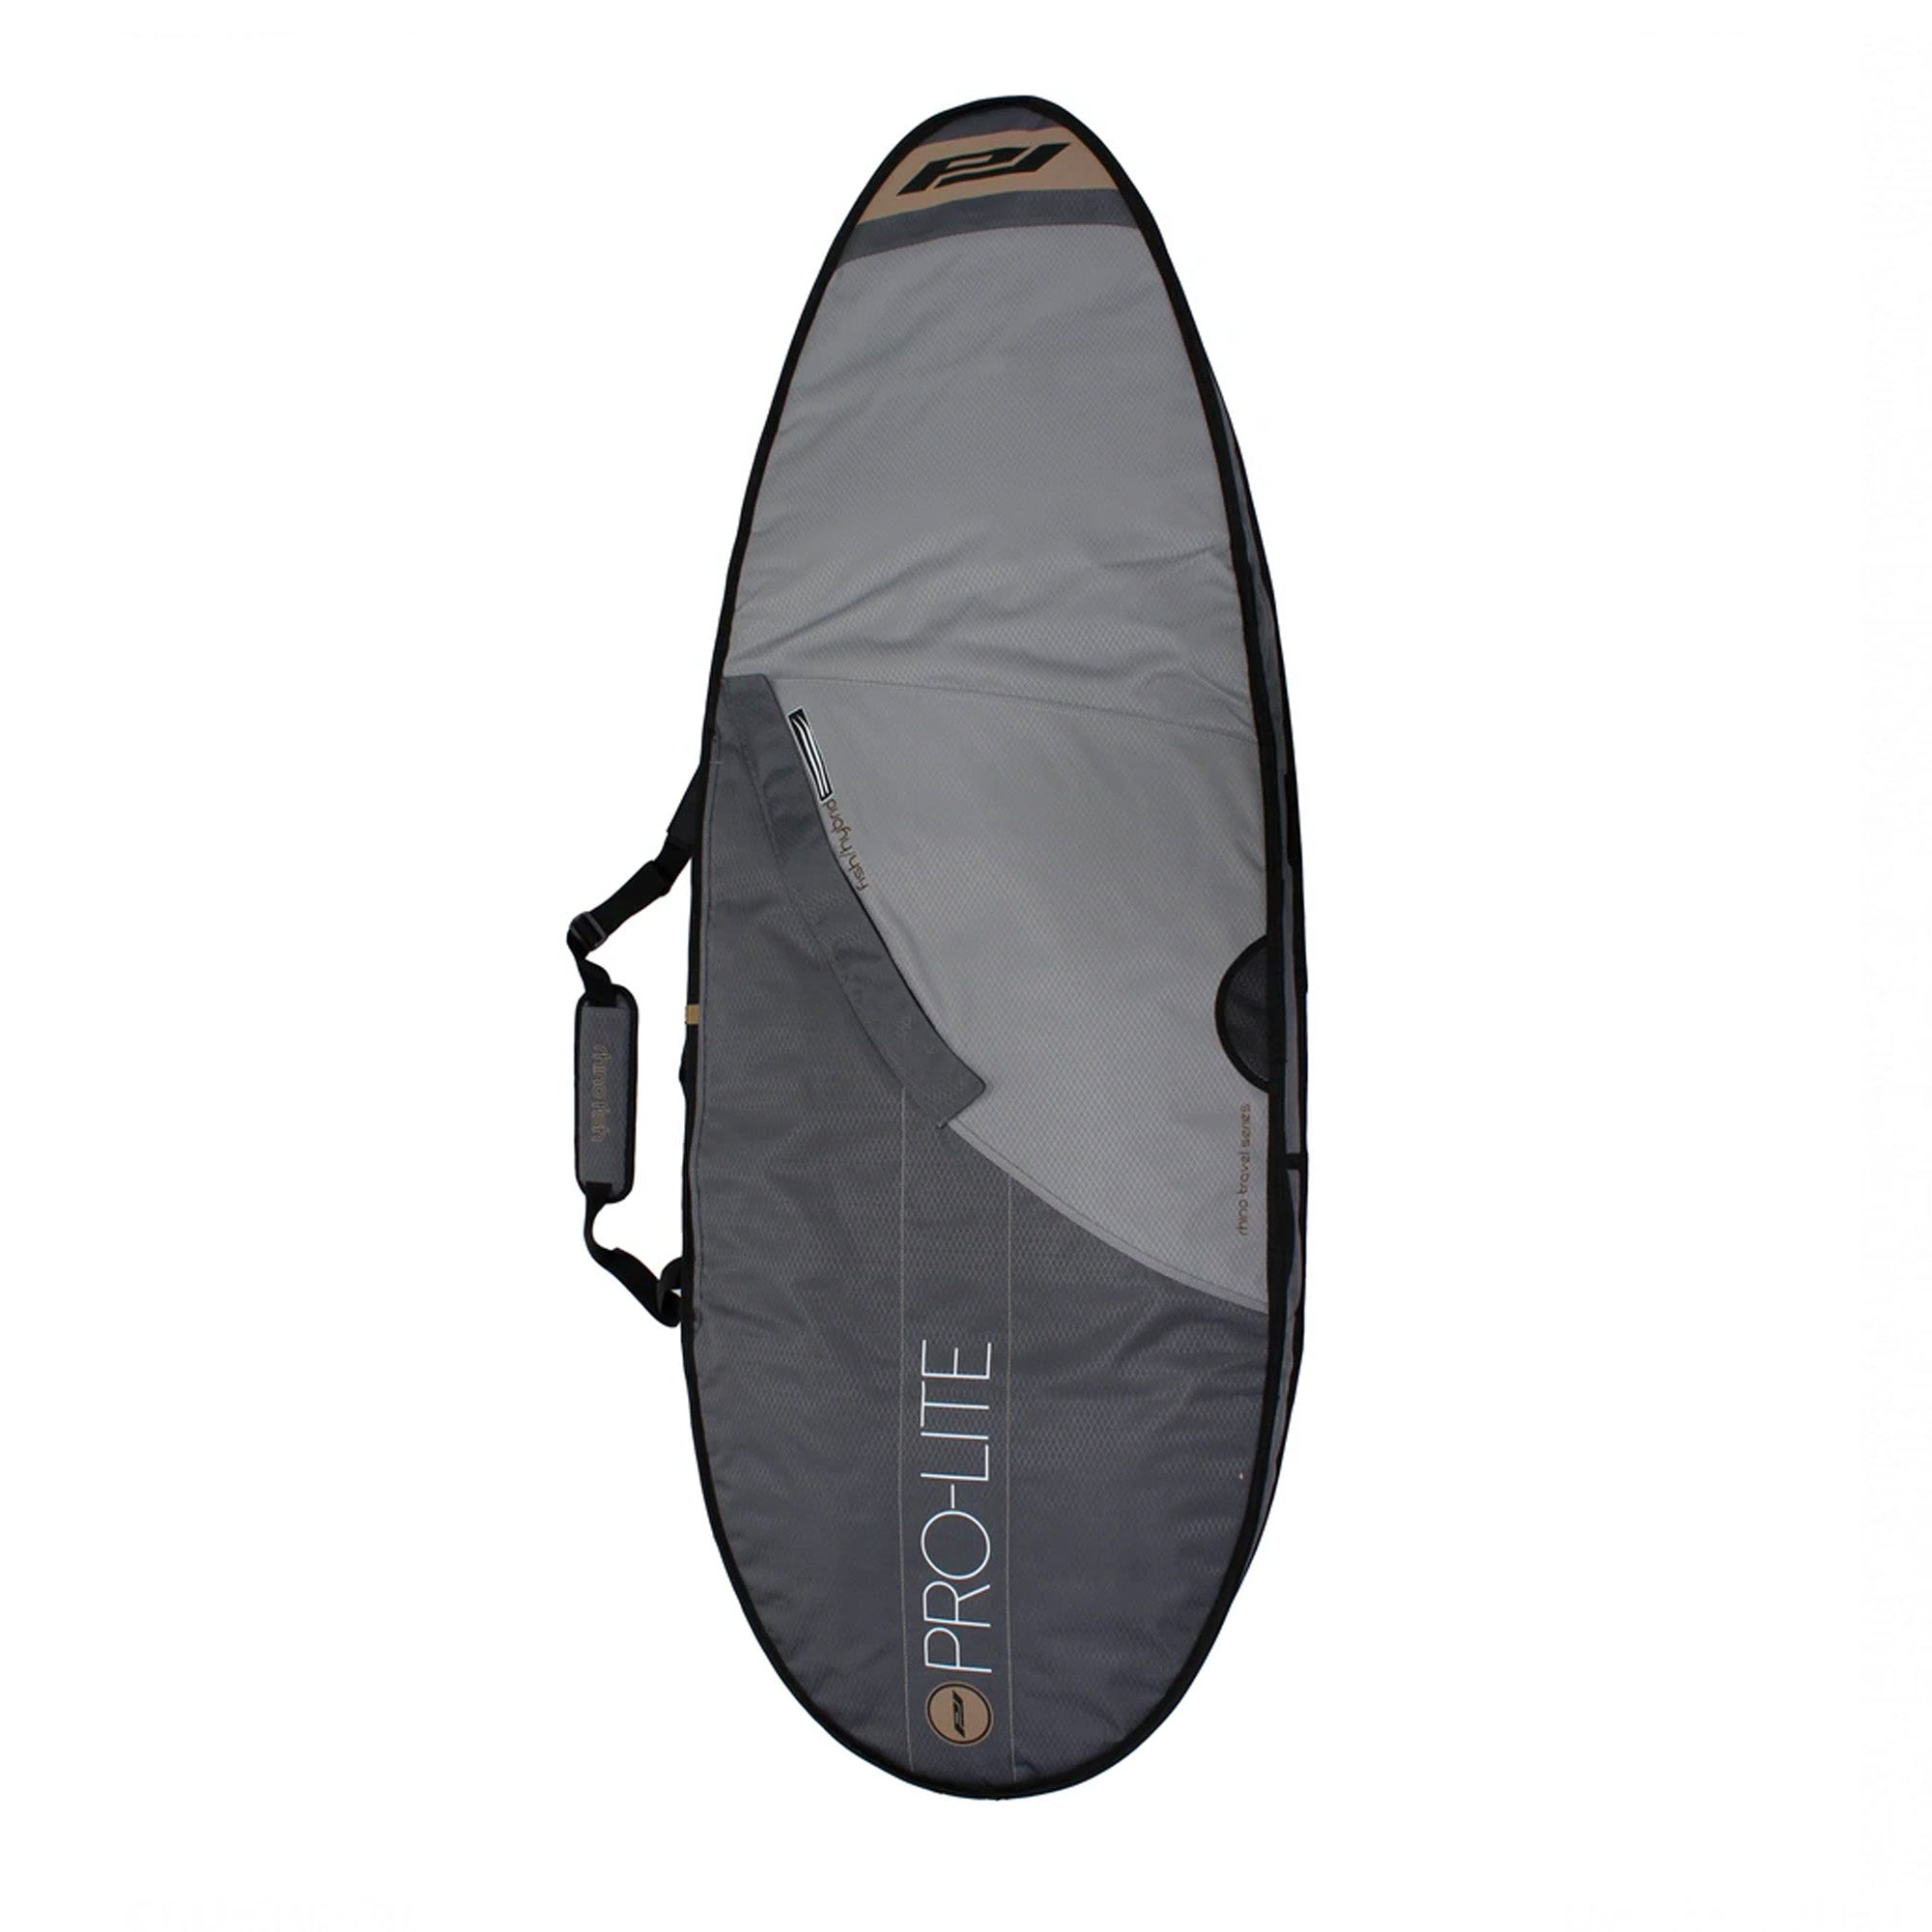 Pro-Lite Rhino Fish/Hybrid Travel Surfboard Bag